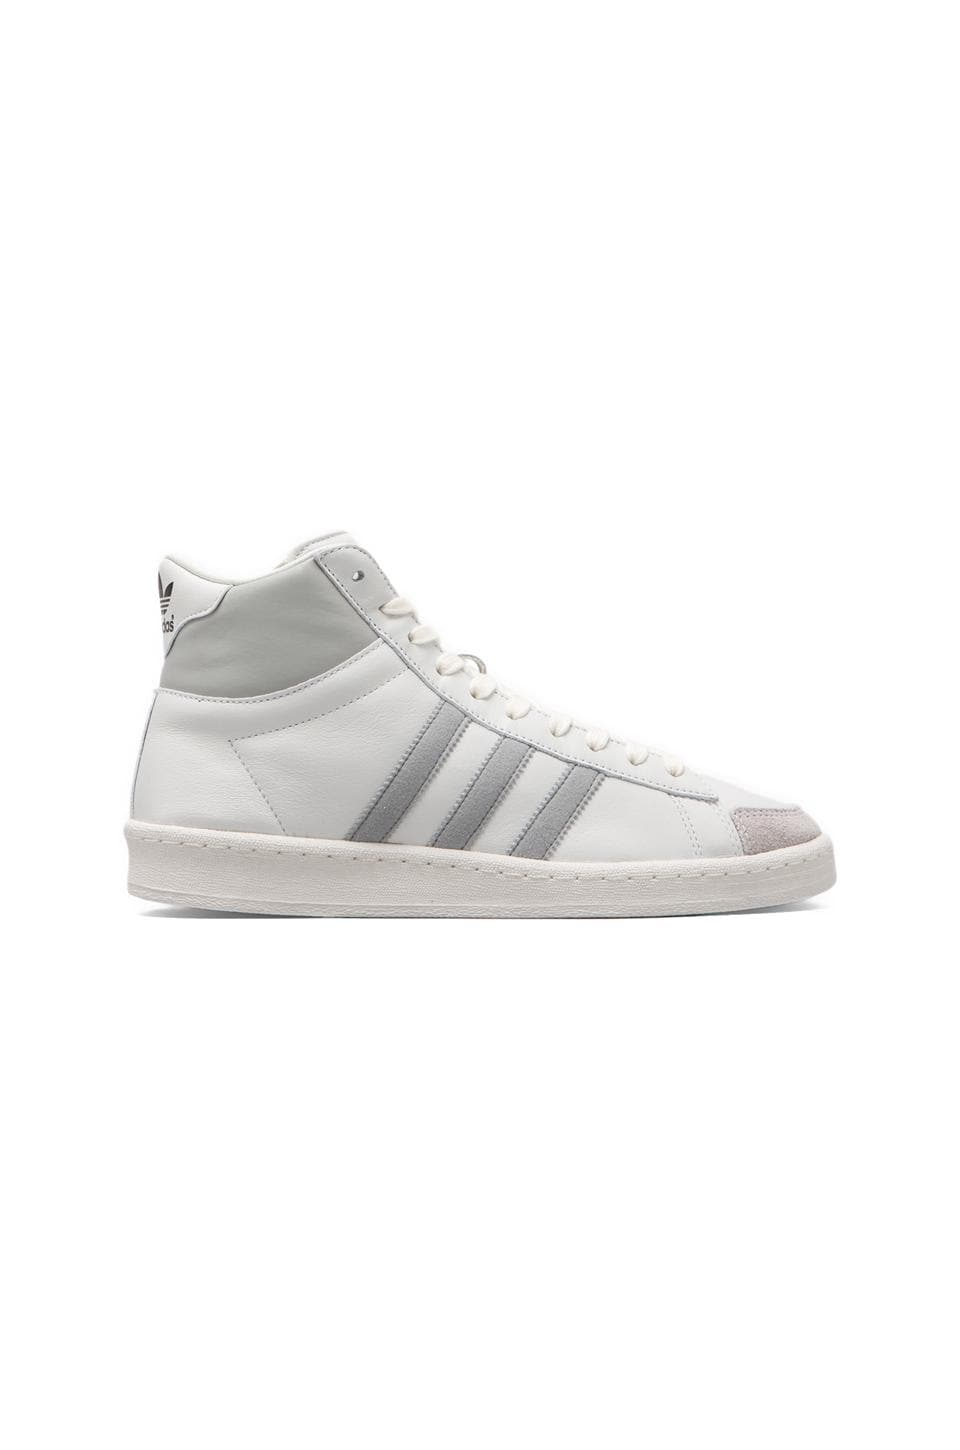 adidas Originals BLUE AO Hook Shot II in Neo White/Light Onix/White Vapour